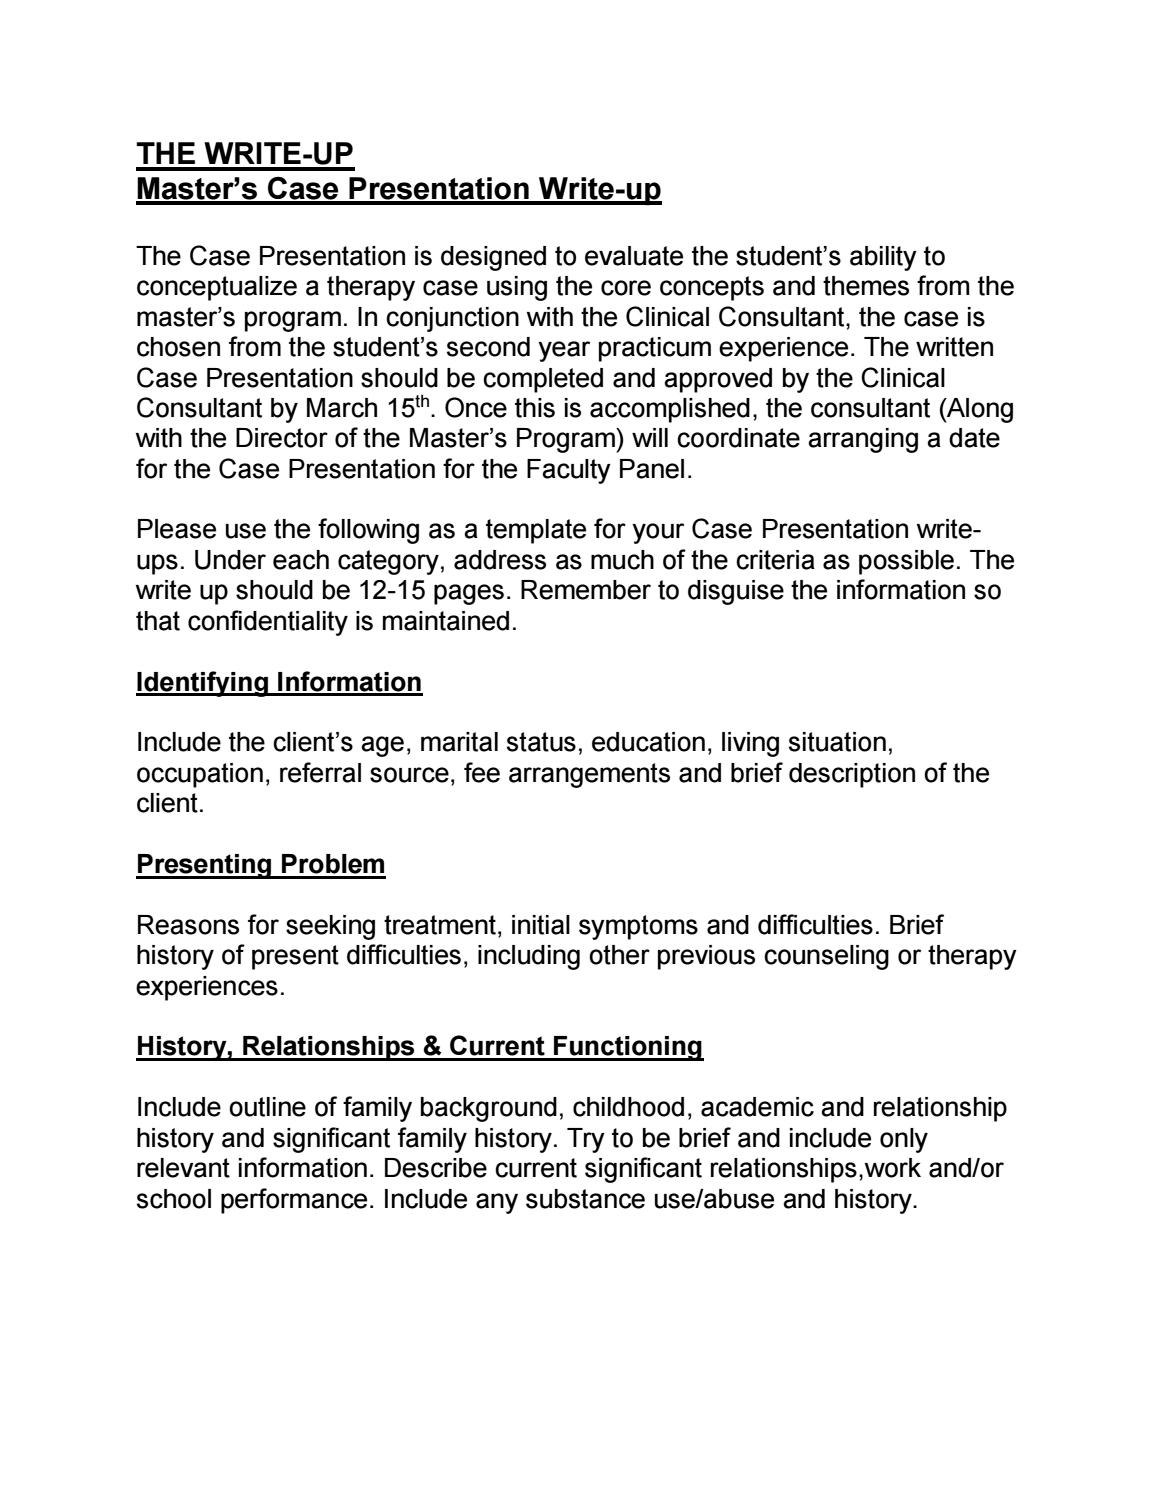 Ma Case Presentation Writeup Outlineicsw  Issuu Intended For Case Presentation Template